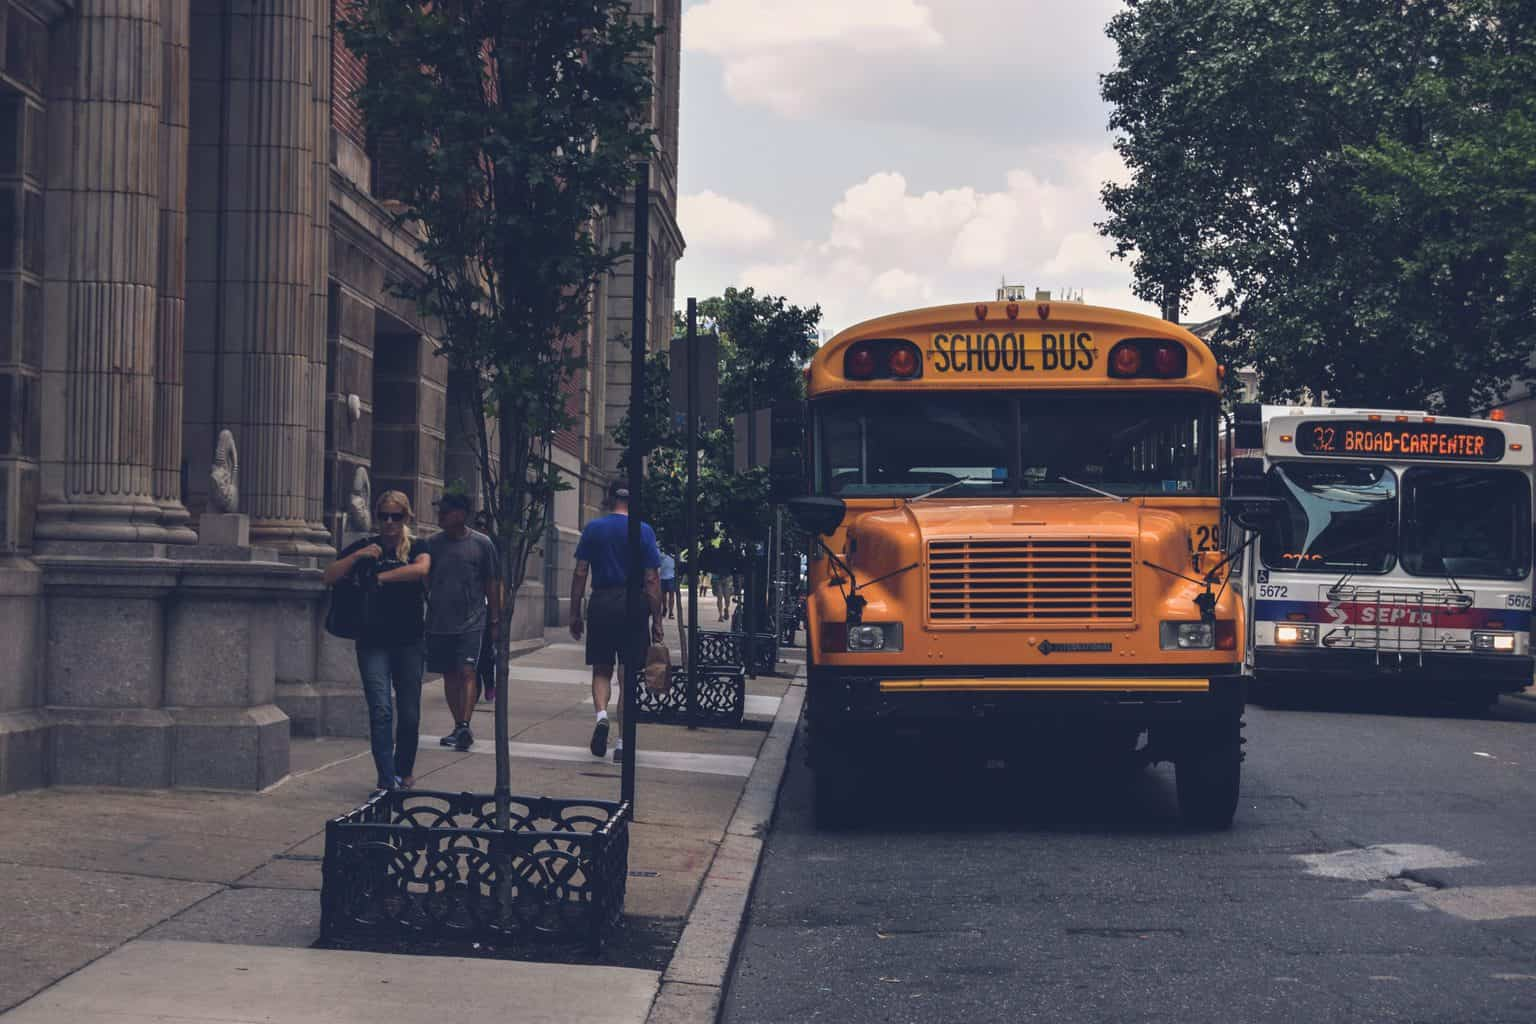 Top Tips for Preparing Your Child for the School Bus